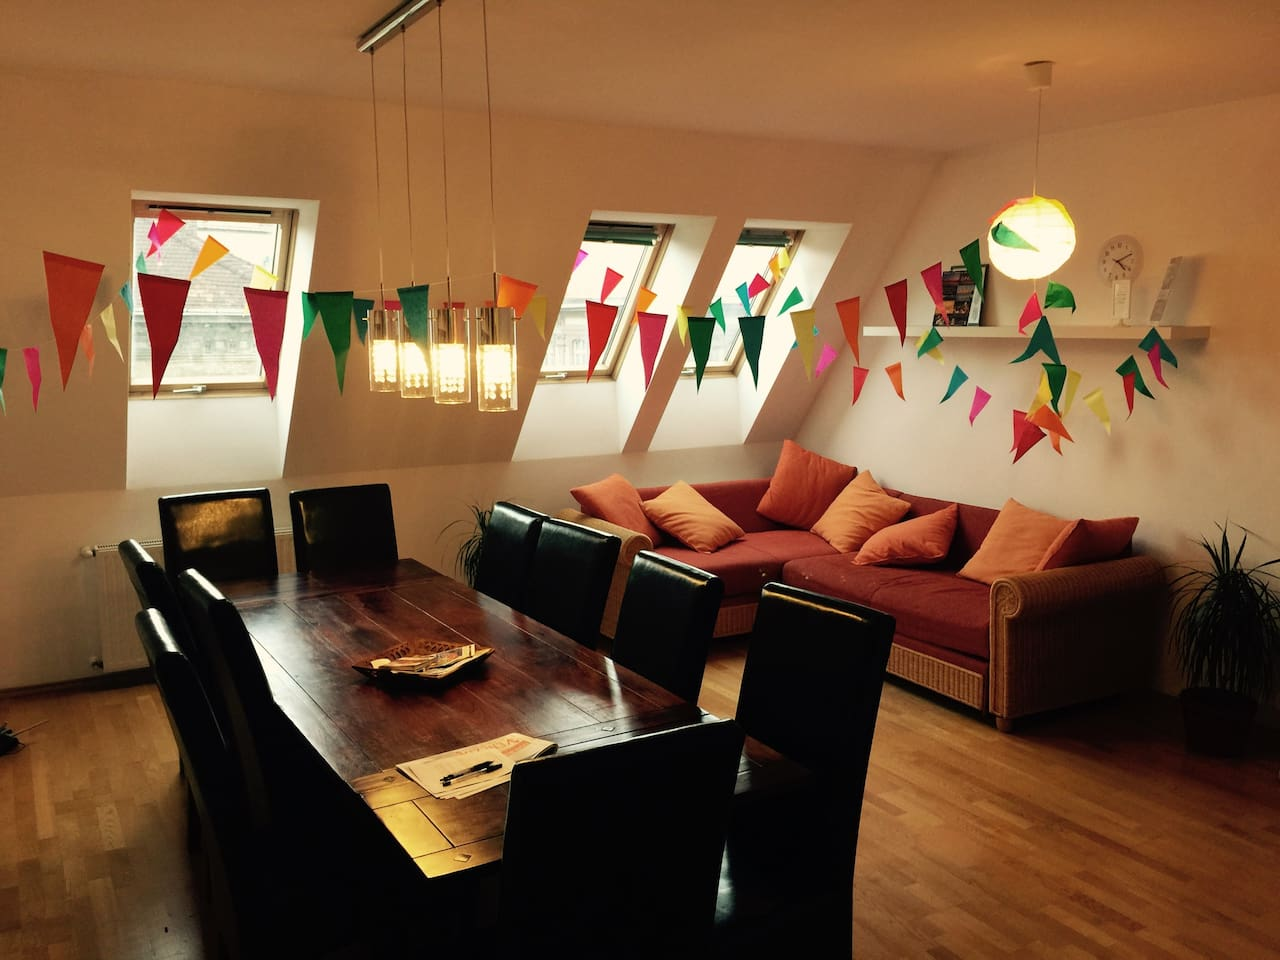 Common room with flags